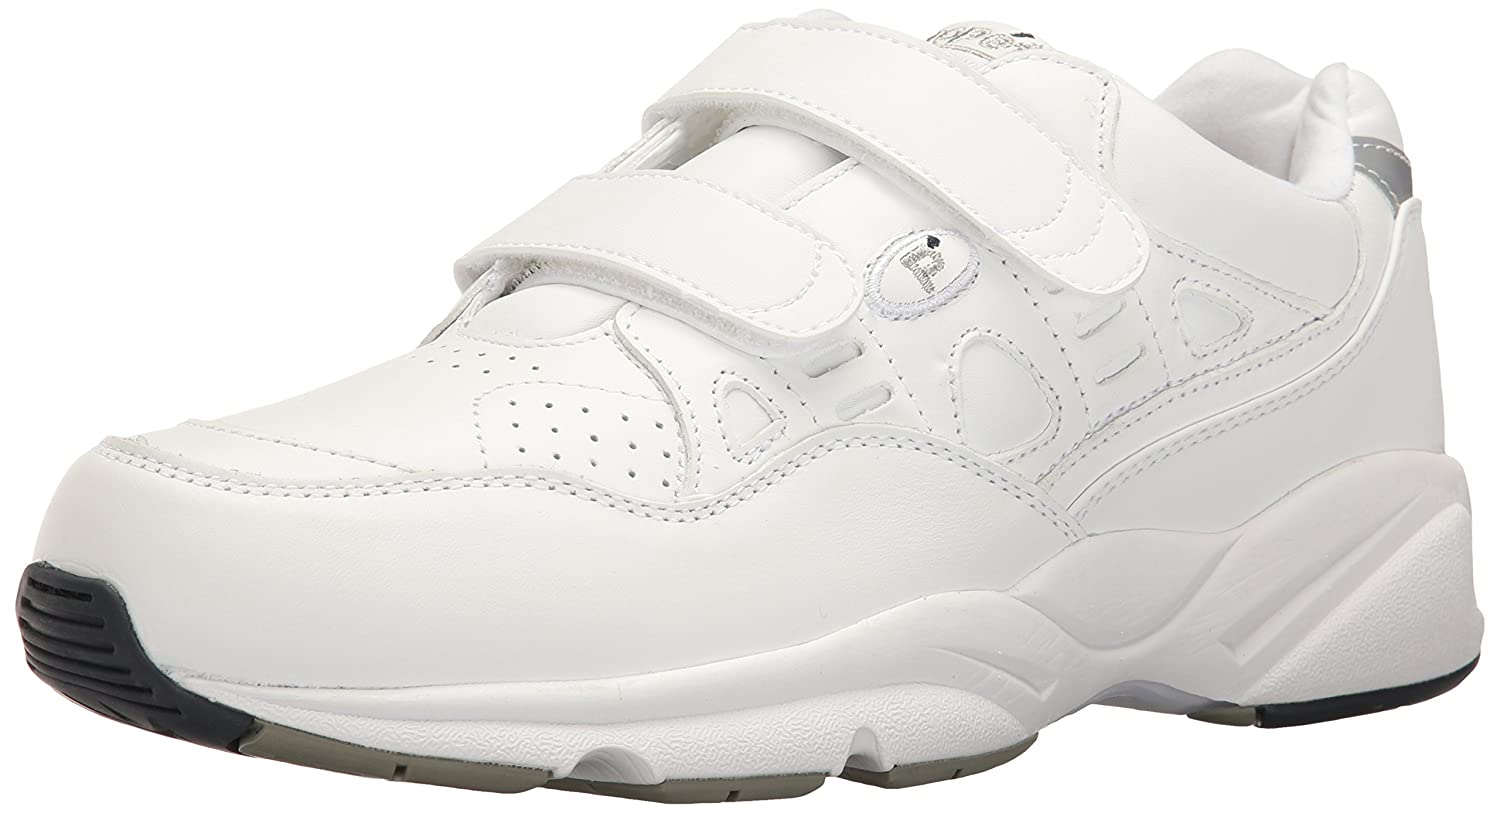 Propet Women's Stability Walker Strap Walking Shoe B000P4LZM8 11 D US|White